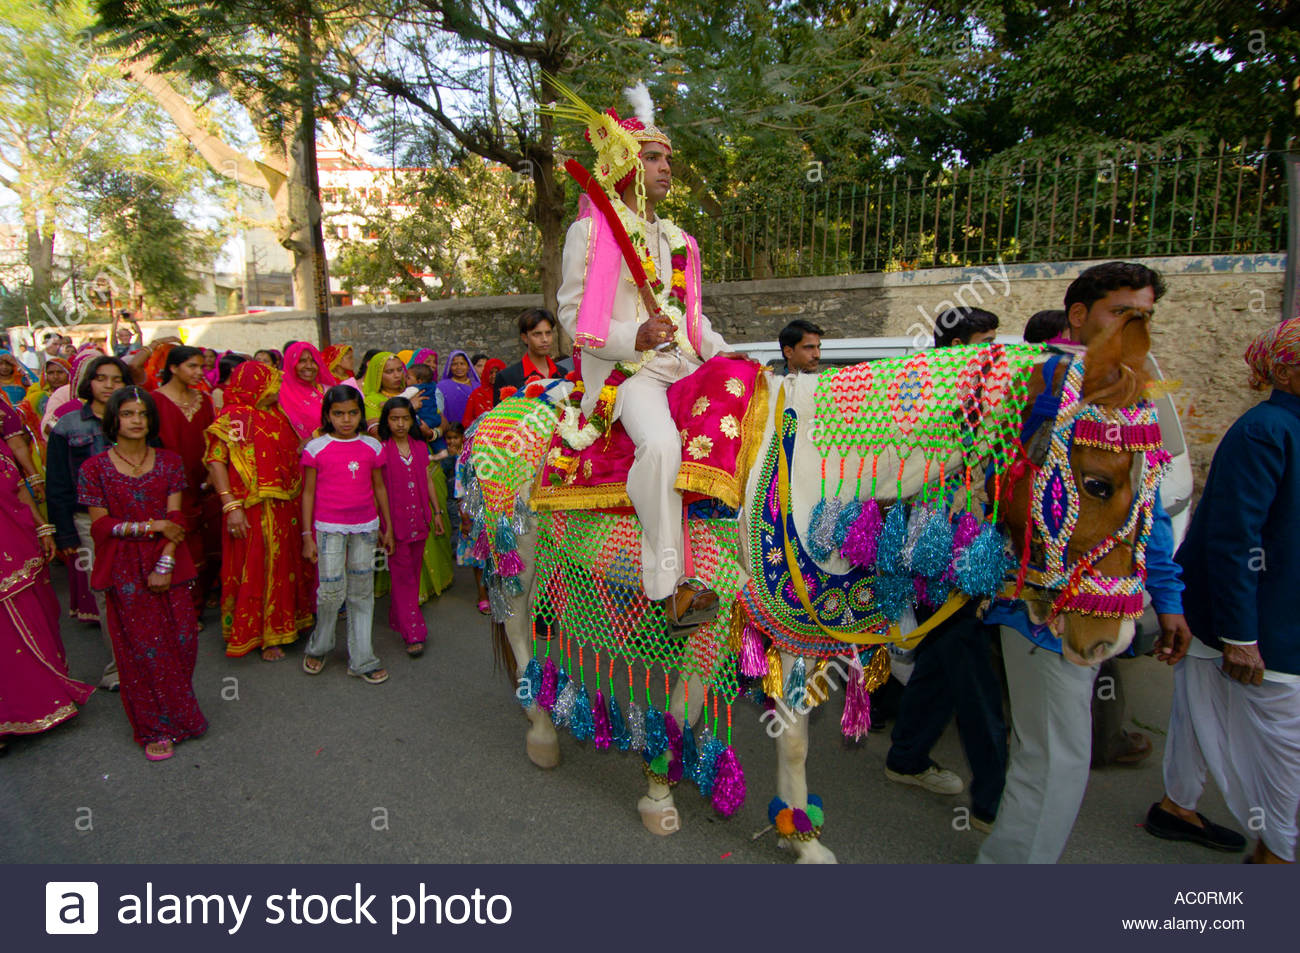 Bride groom riding a horse in a wedding procession udaipur rajasthan bride groom riding a horse in a wedding procession udaipur rajasthan india junglespirit Images